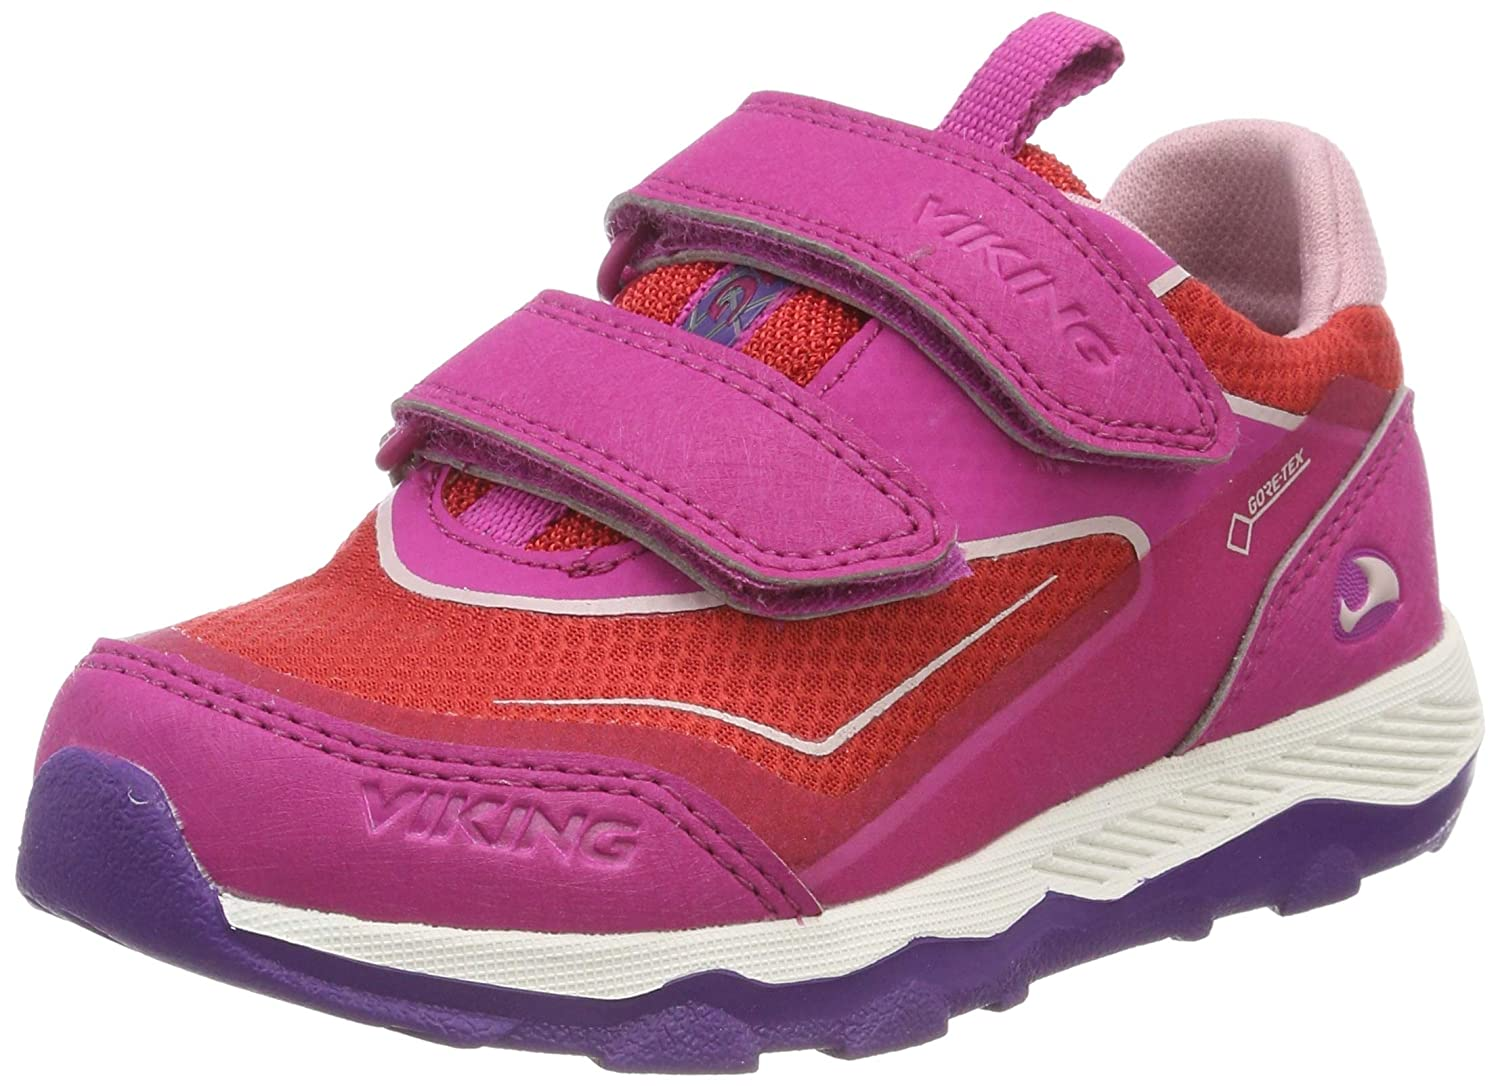 Rose (Magenta rouge 9610) Viking Evanger Low GTX, Chaussures de Cross Mixte Enfant 23 EU